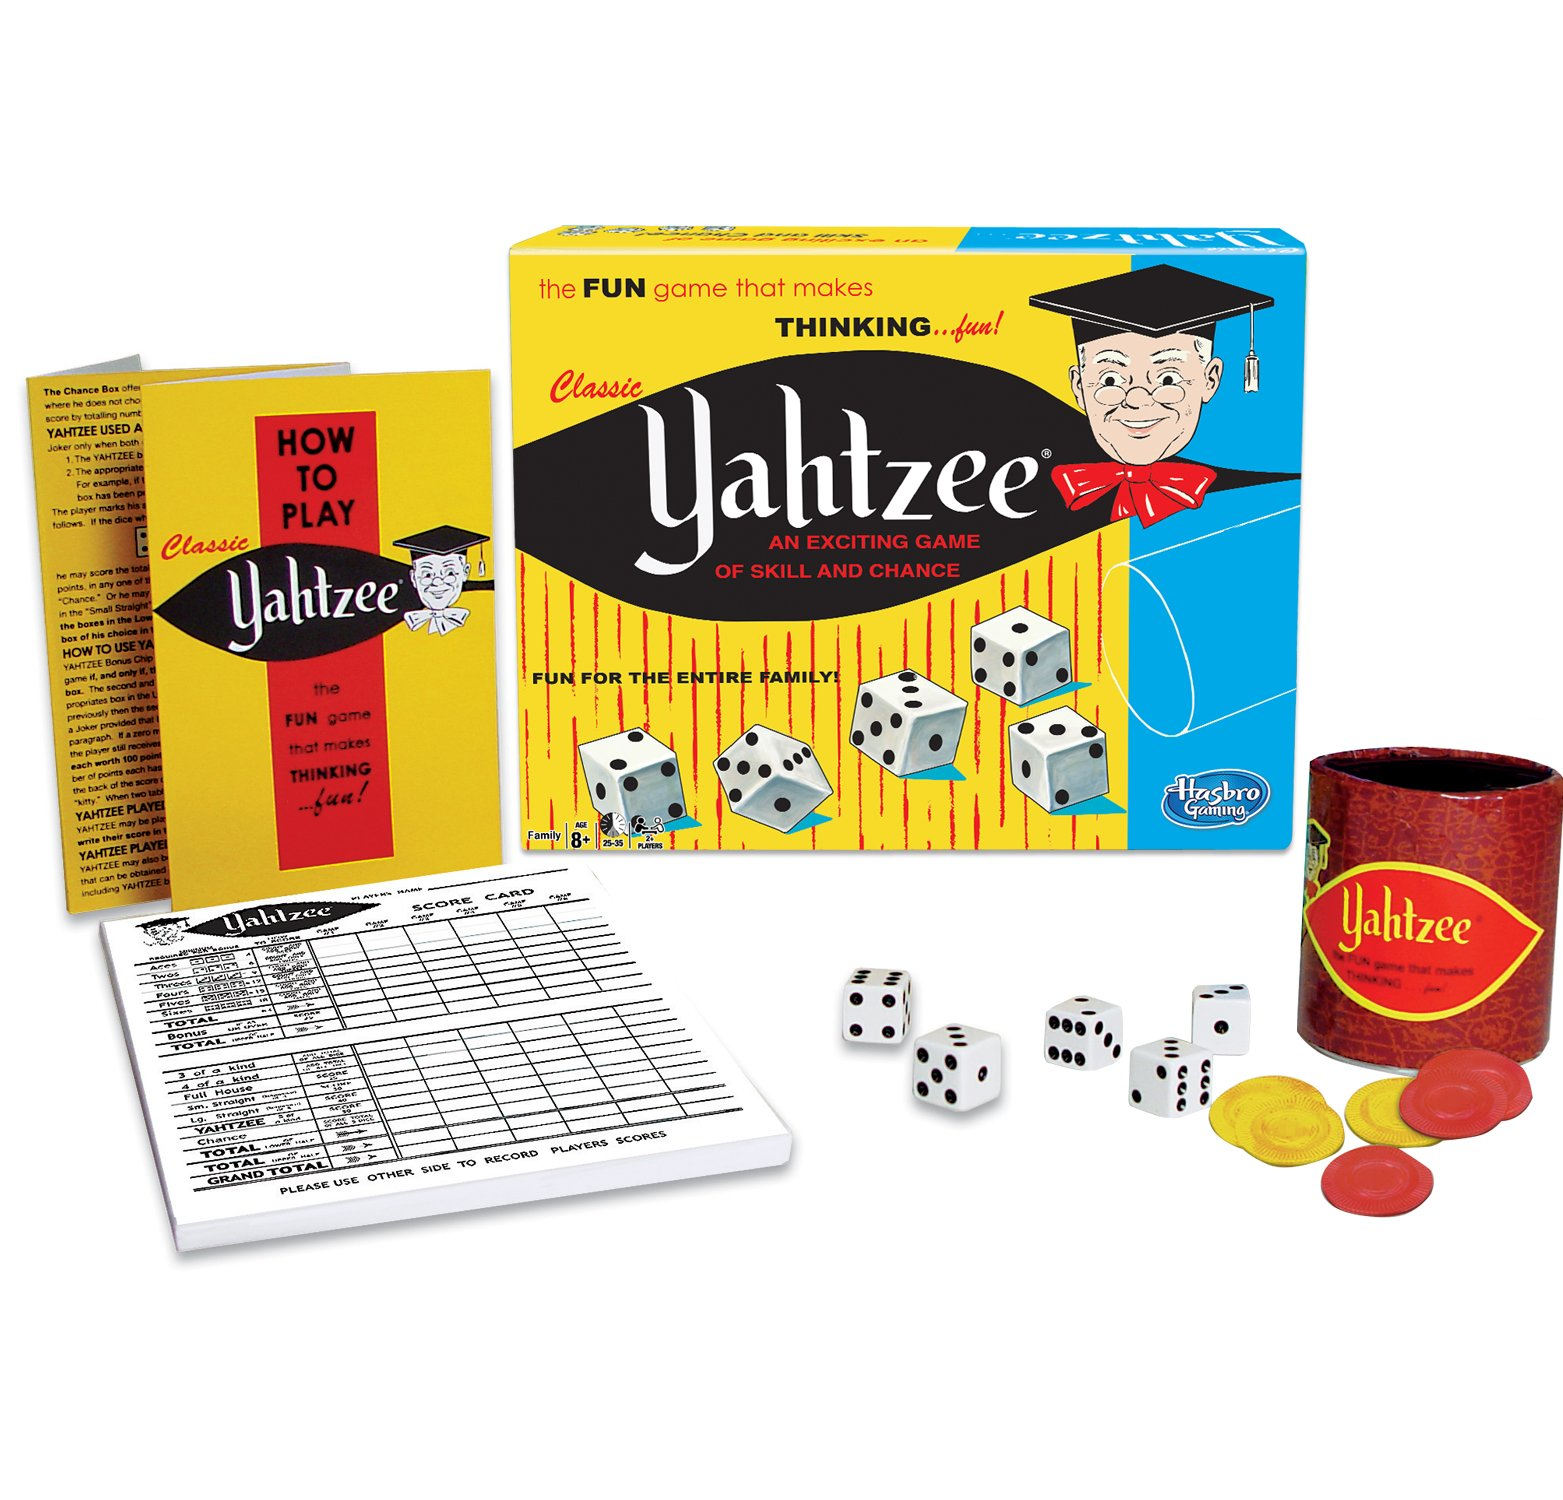 Classic Yahtzee, An Exciting Game Of Skill And Chance by Winning Moves Games